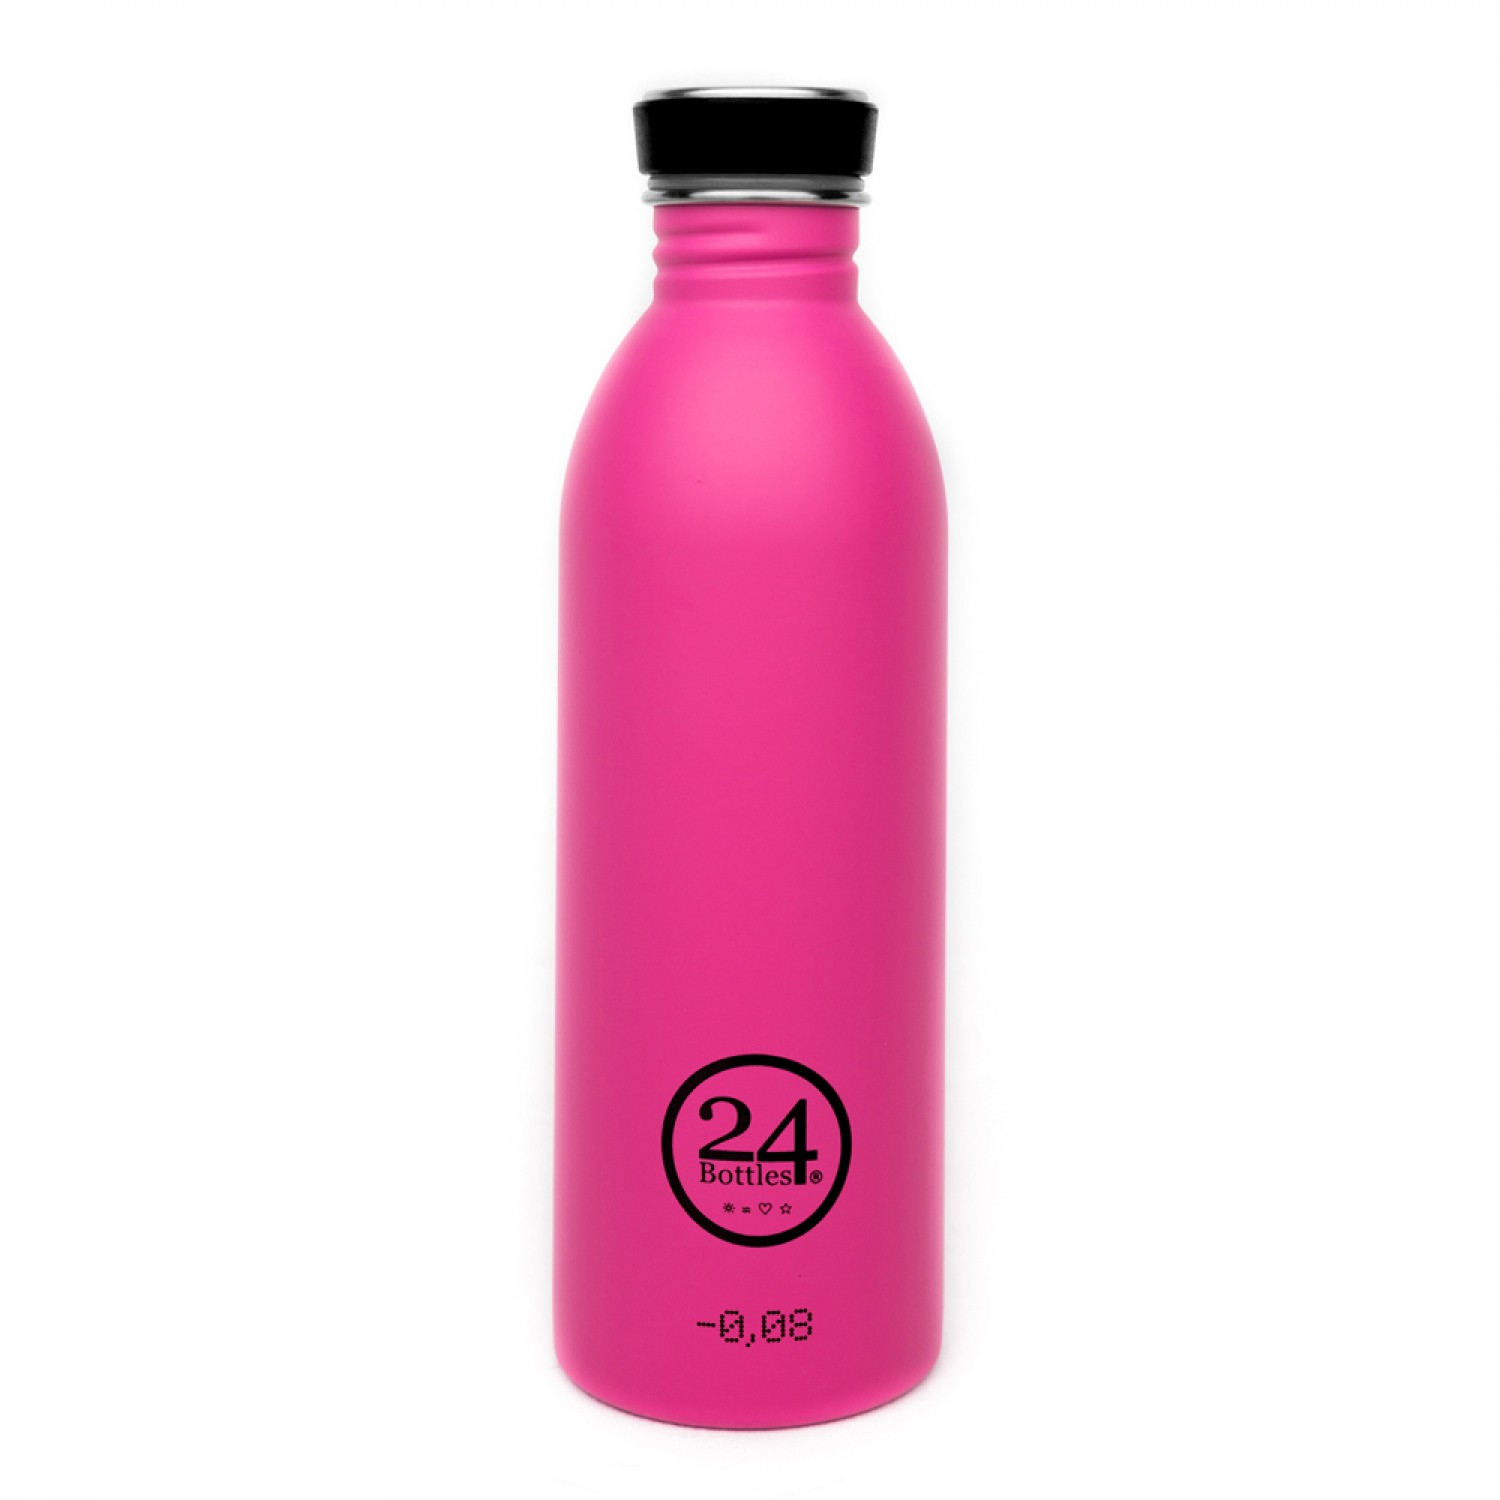 Stainless Steel Drinking Bottle 0.5L passion pink | 24Bottles